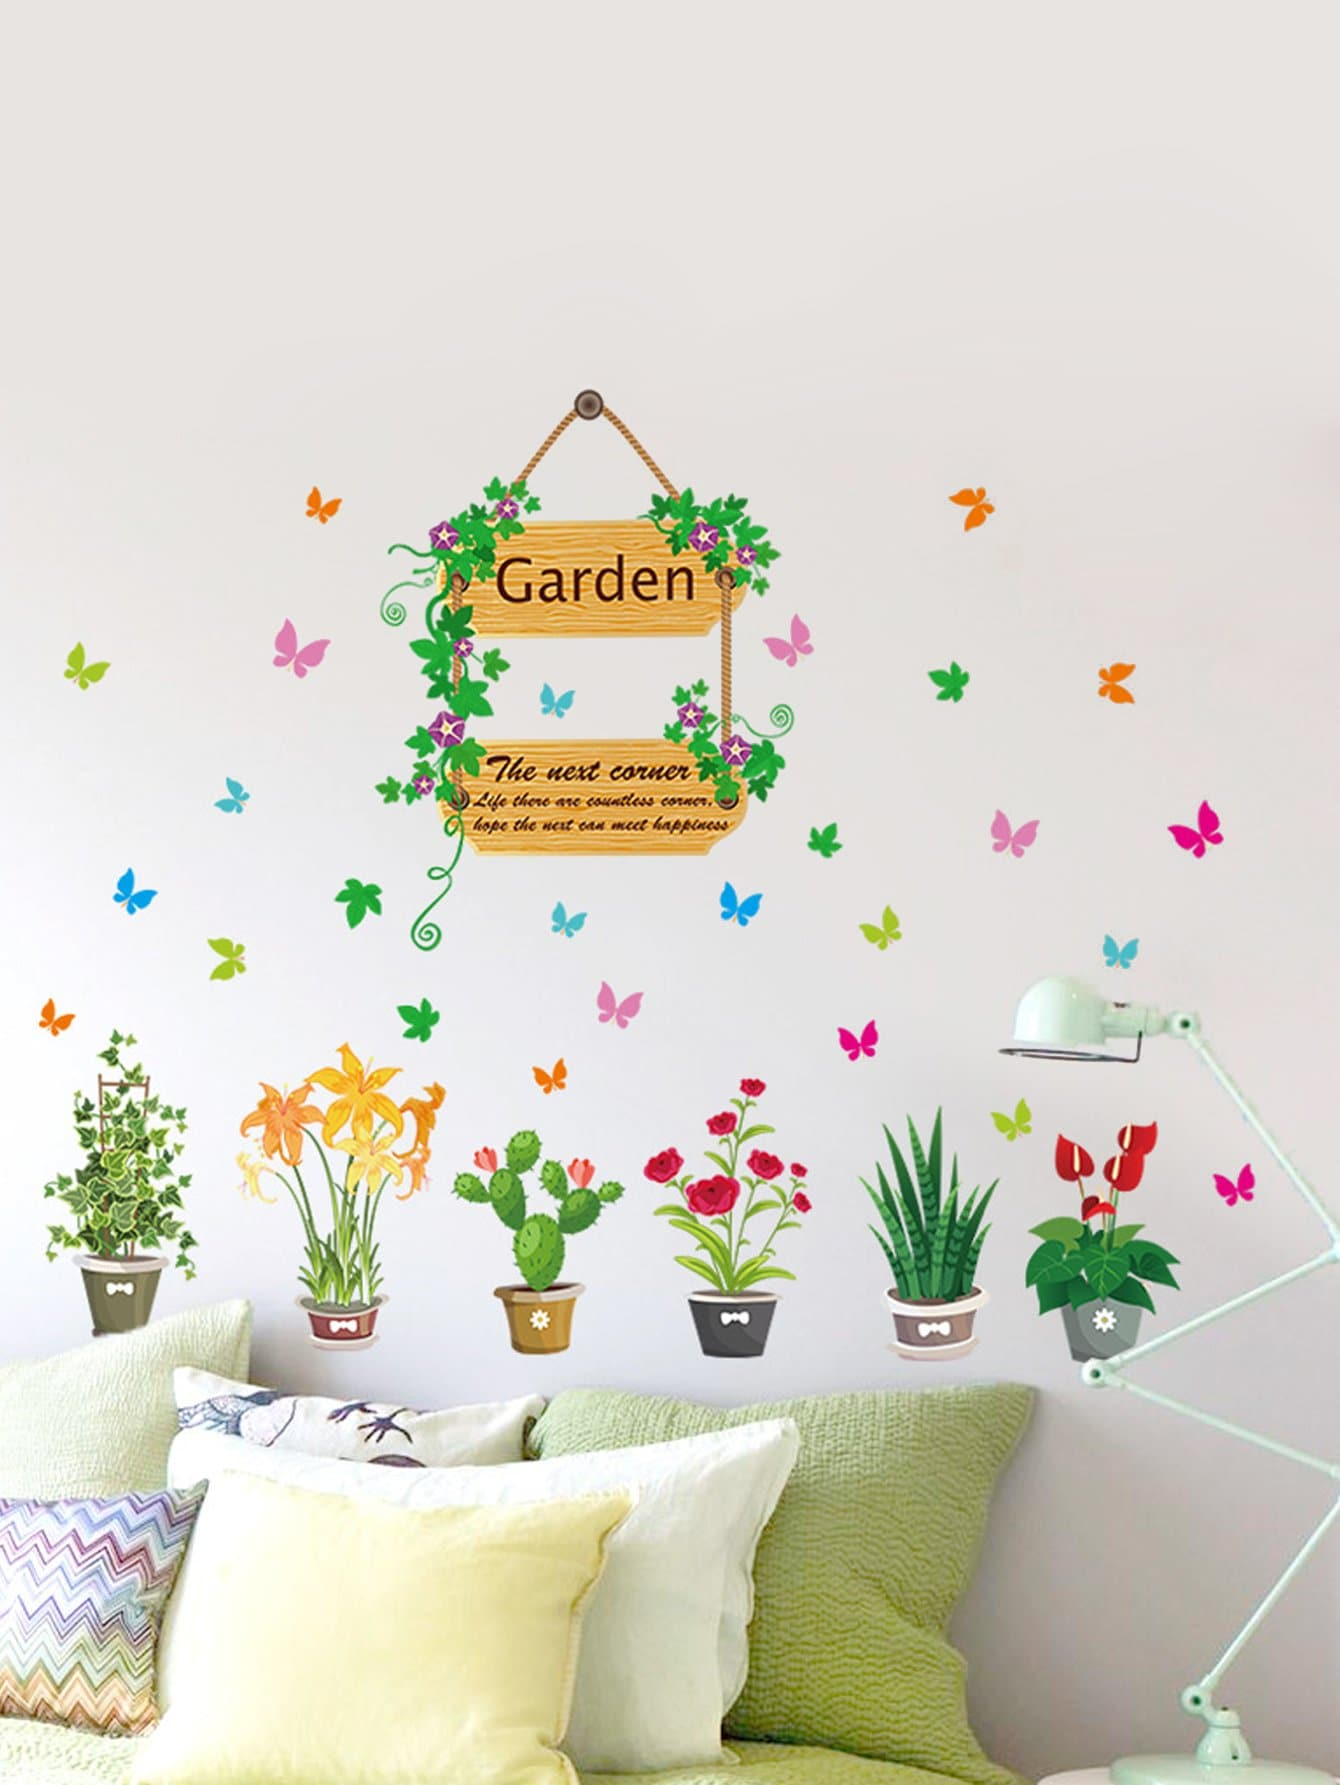 3D Vivid Garden Potted Plants Wall Sticker louis garden artificial flowers fake rose in picket fence pot pack small potted plant